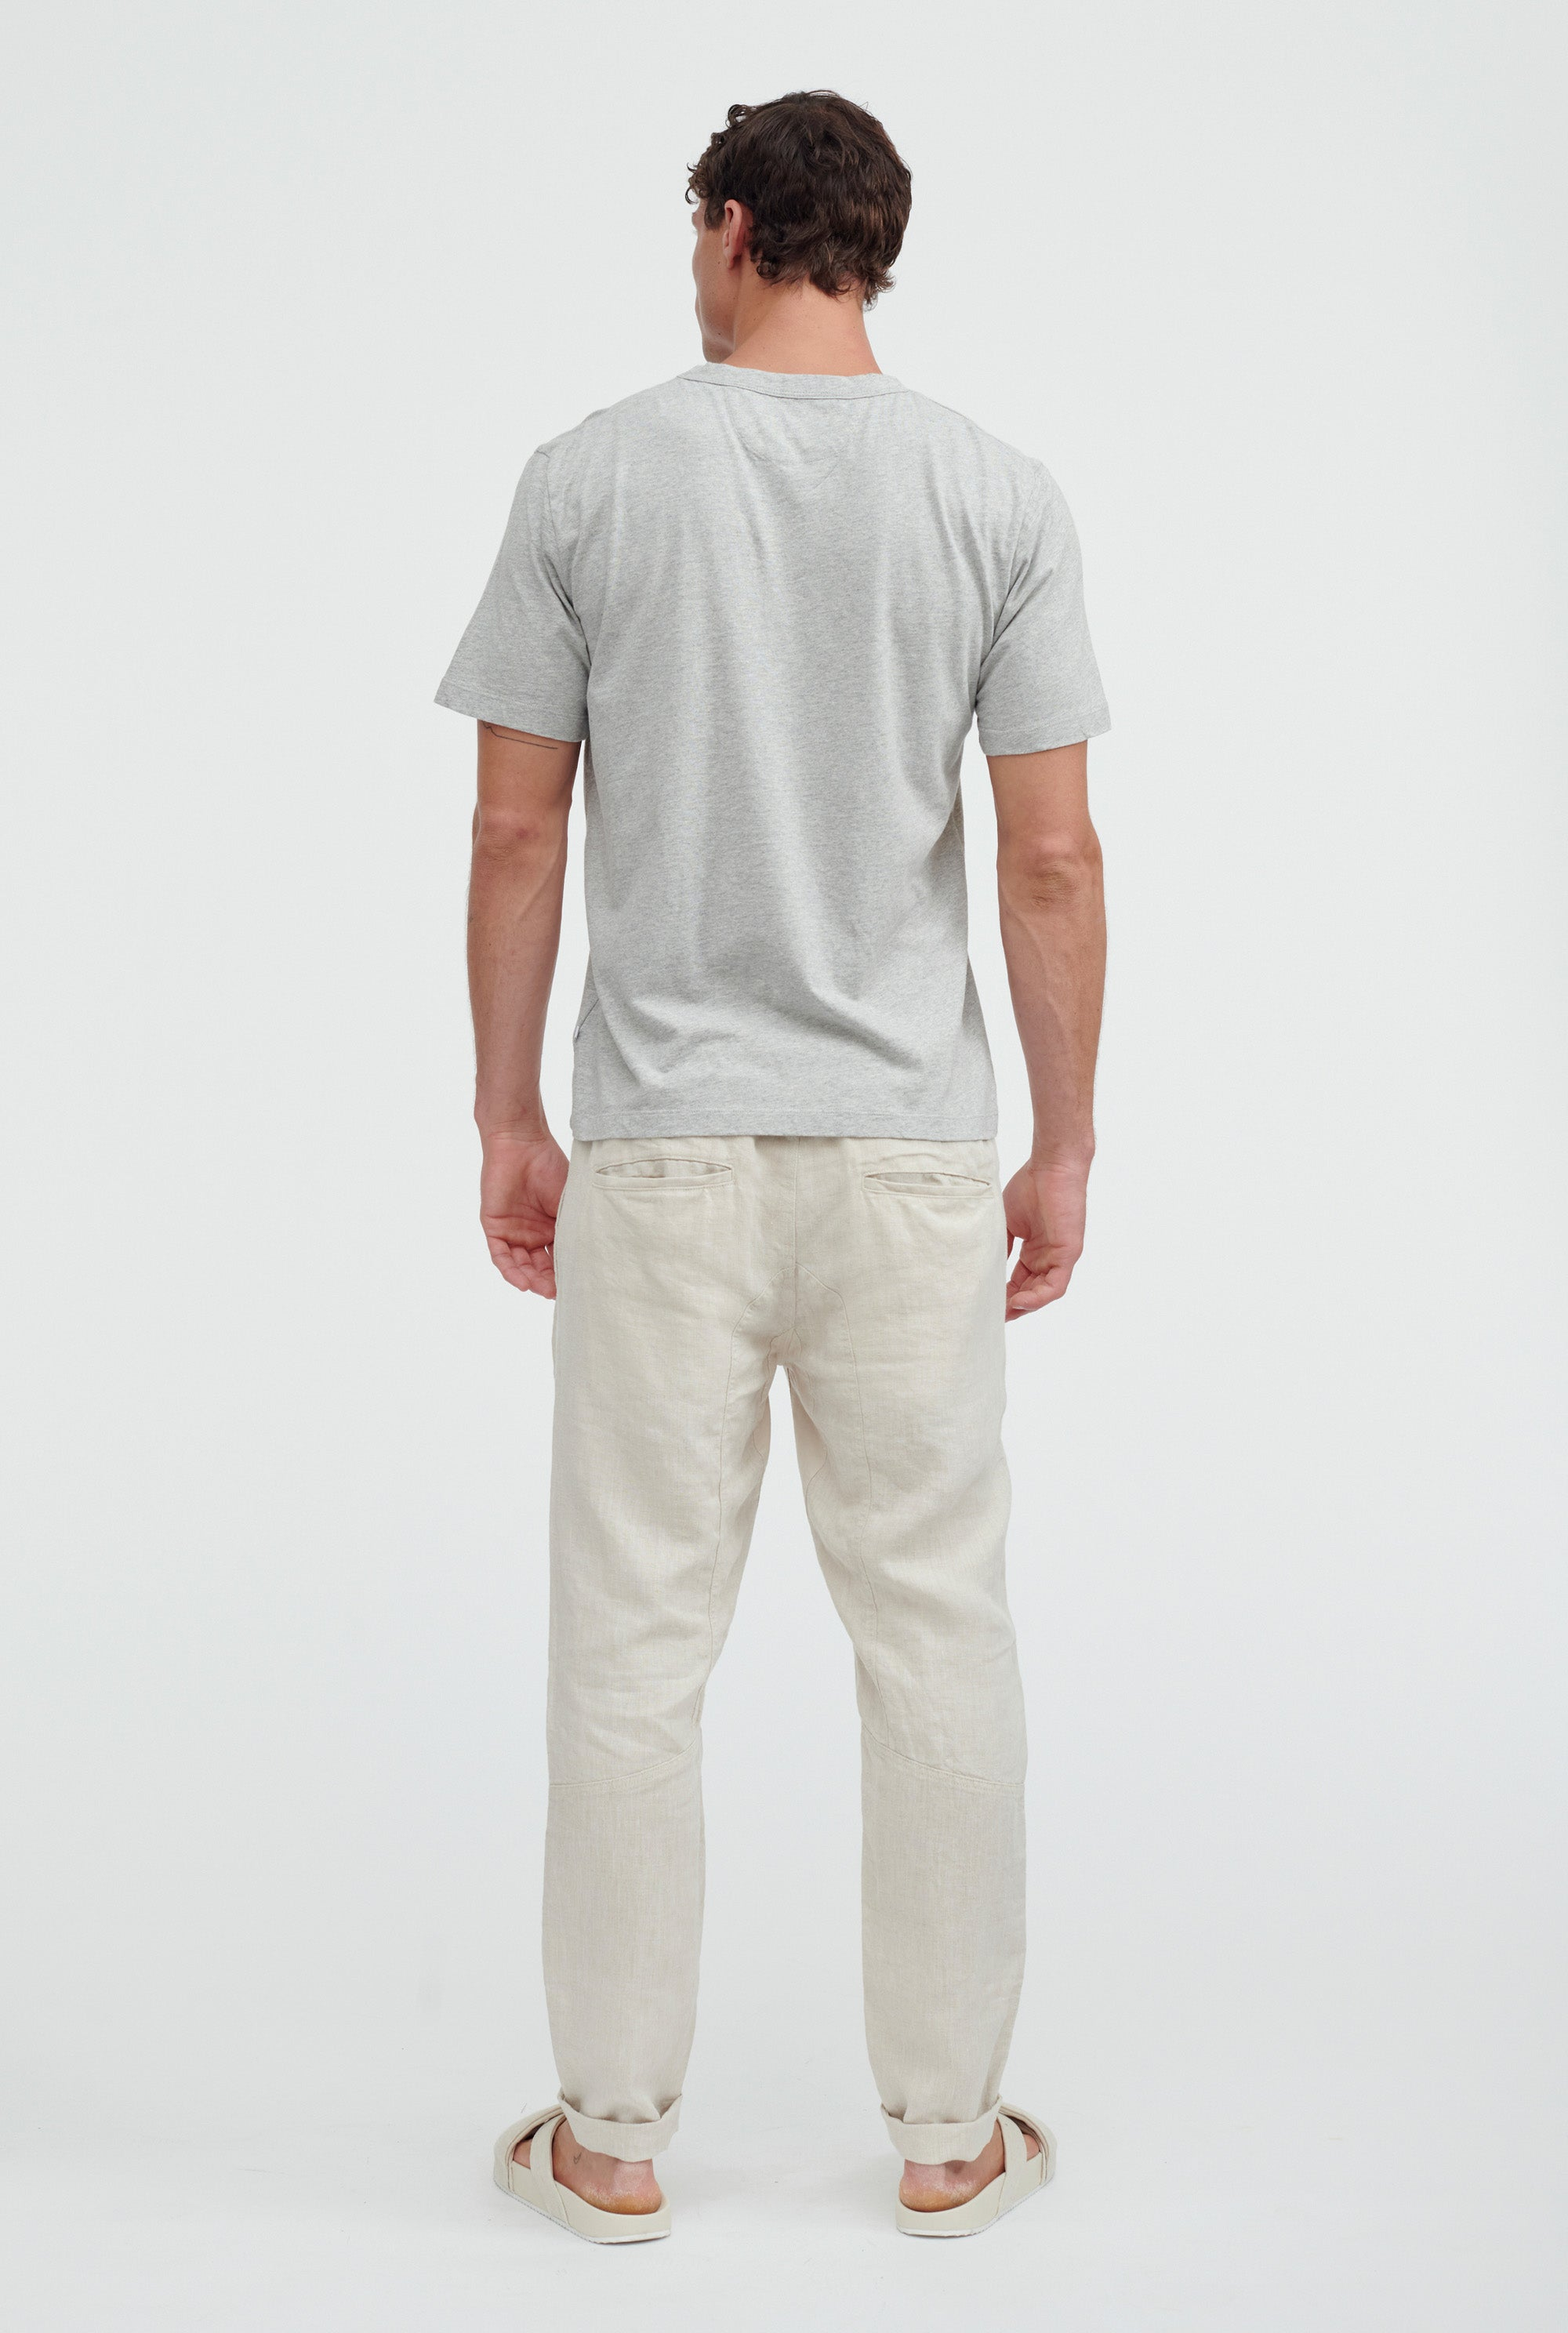 Light Weight Cotton T-Shirt - Grey Marle